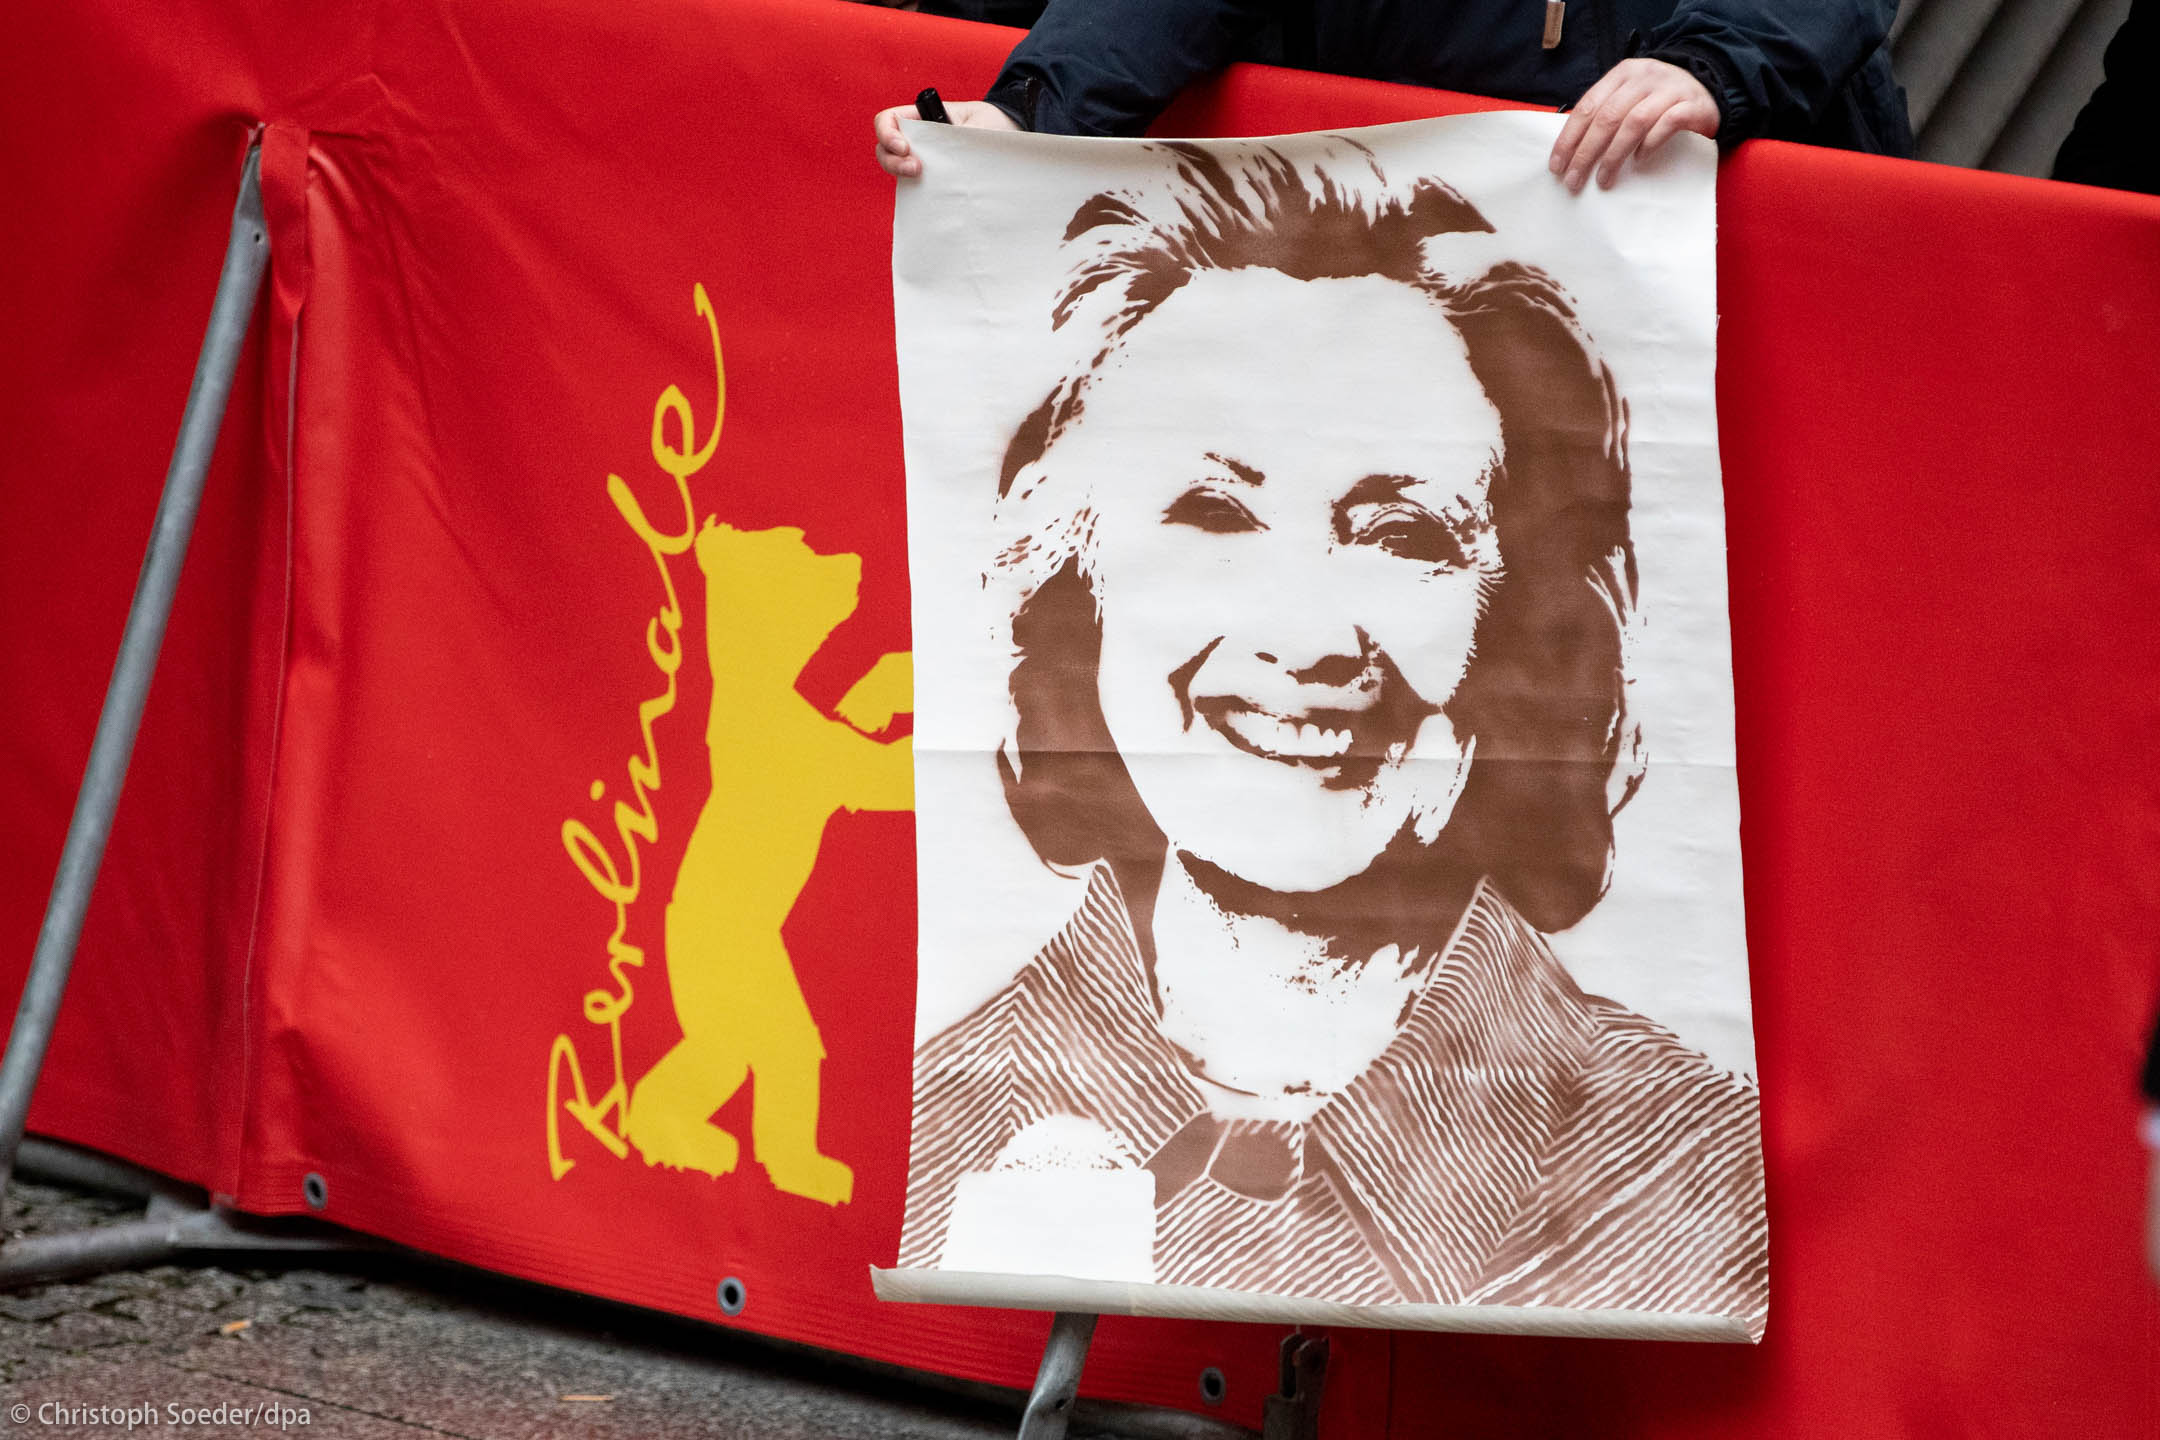 Poster of Hillary Clinton